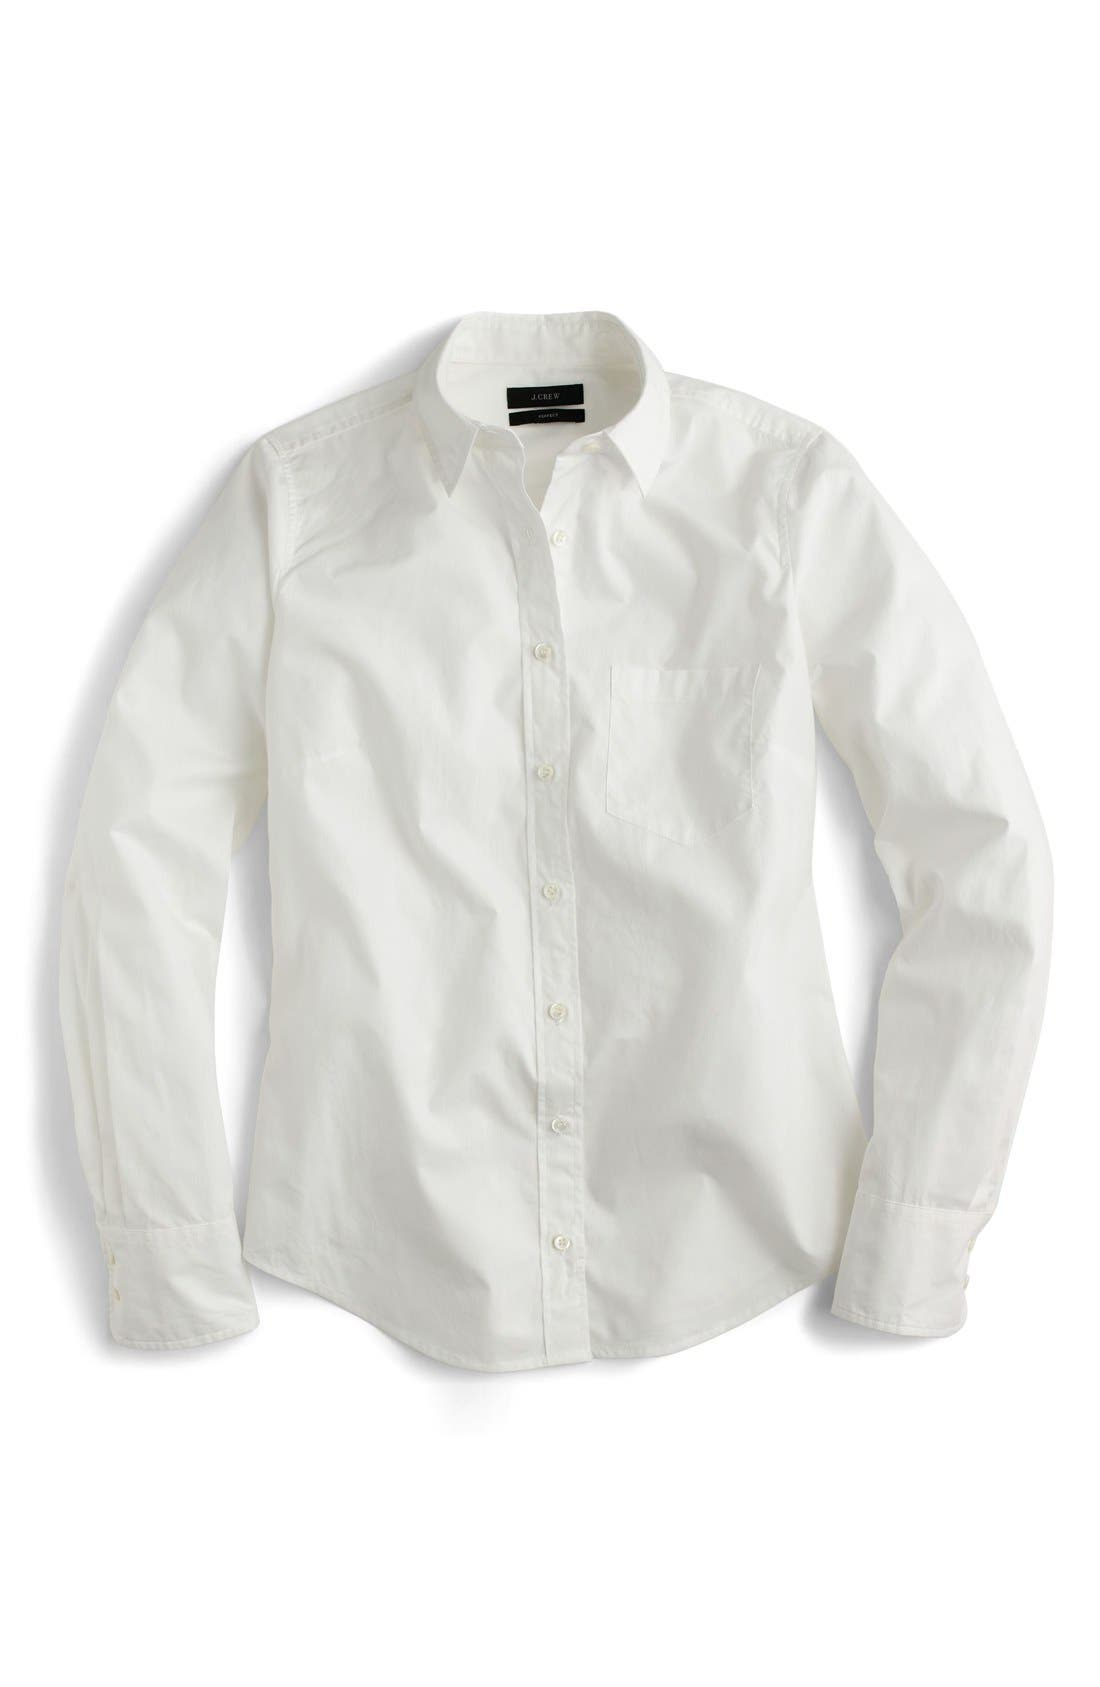 J.Crew New Perfect Cotton Poplin Shirt,                             Alternate thumbnail 5, color,                             White